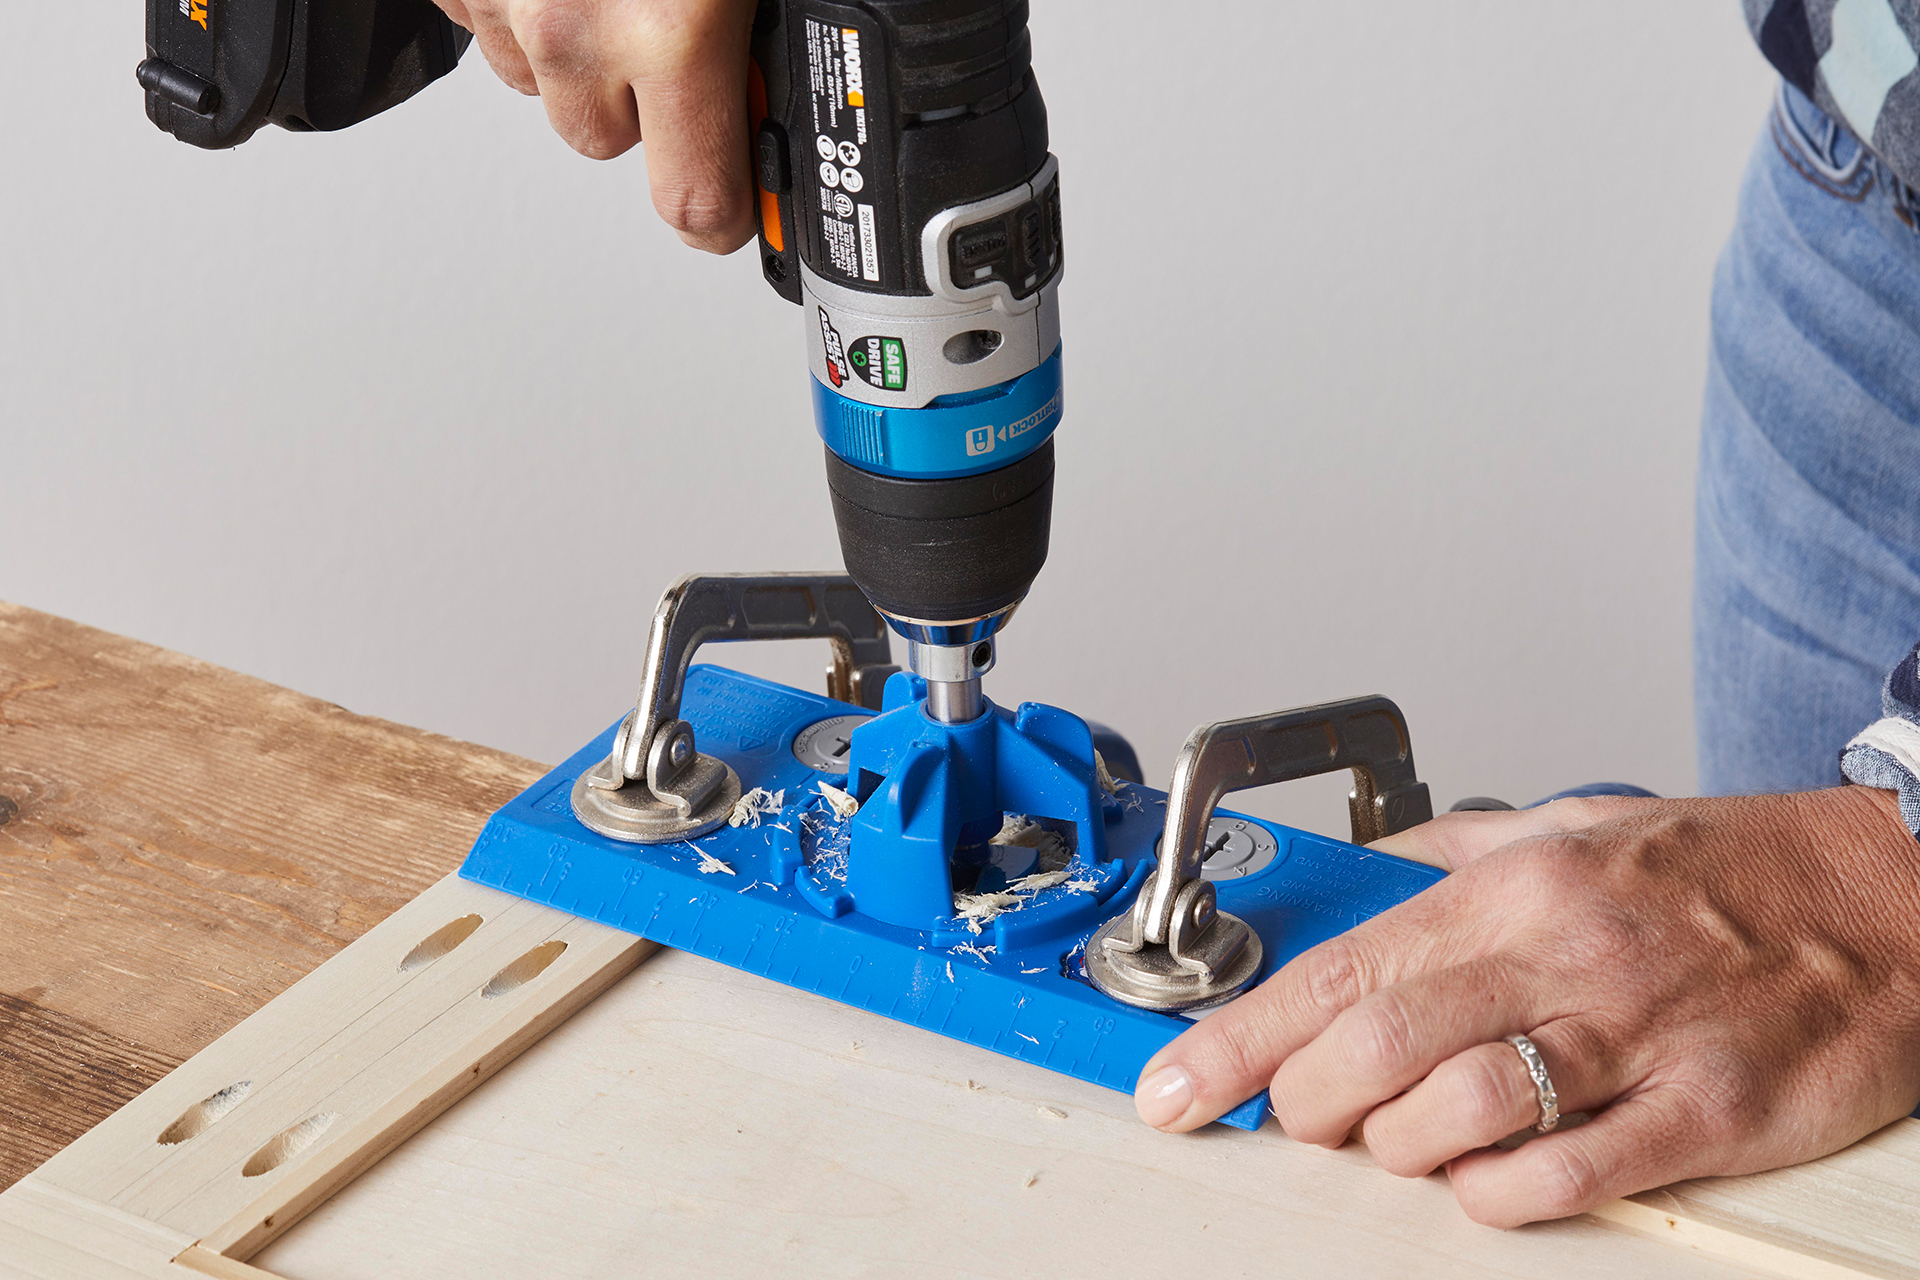 man holding electric drill and clamp for wood cabinet project